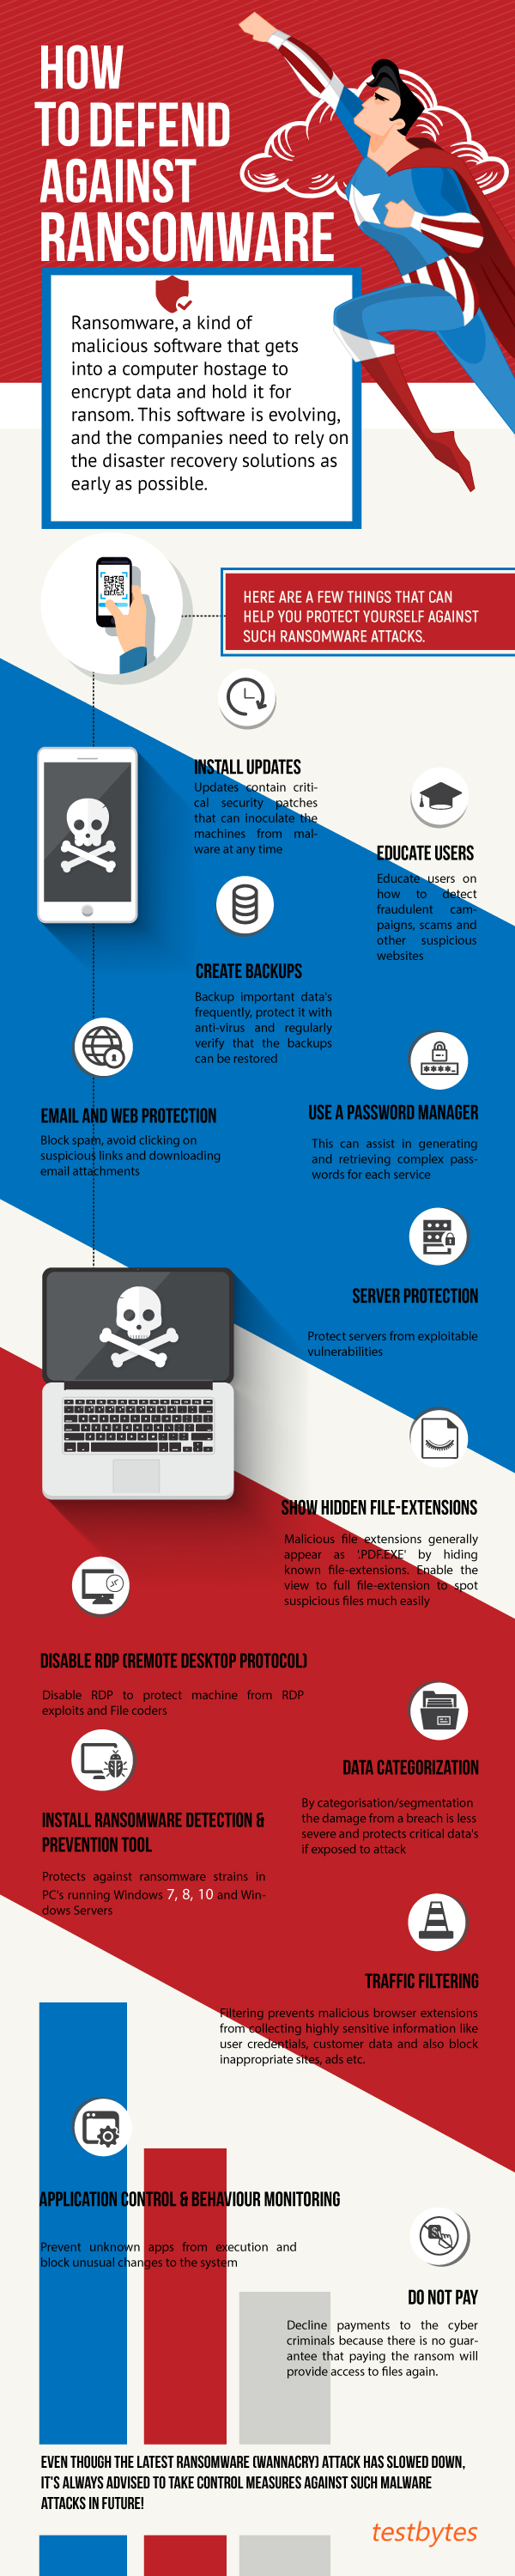 How-to-Defend-Against-Ransomware-infographic-plaza